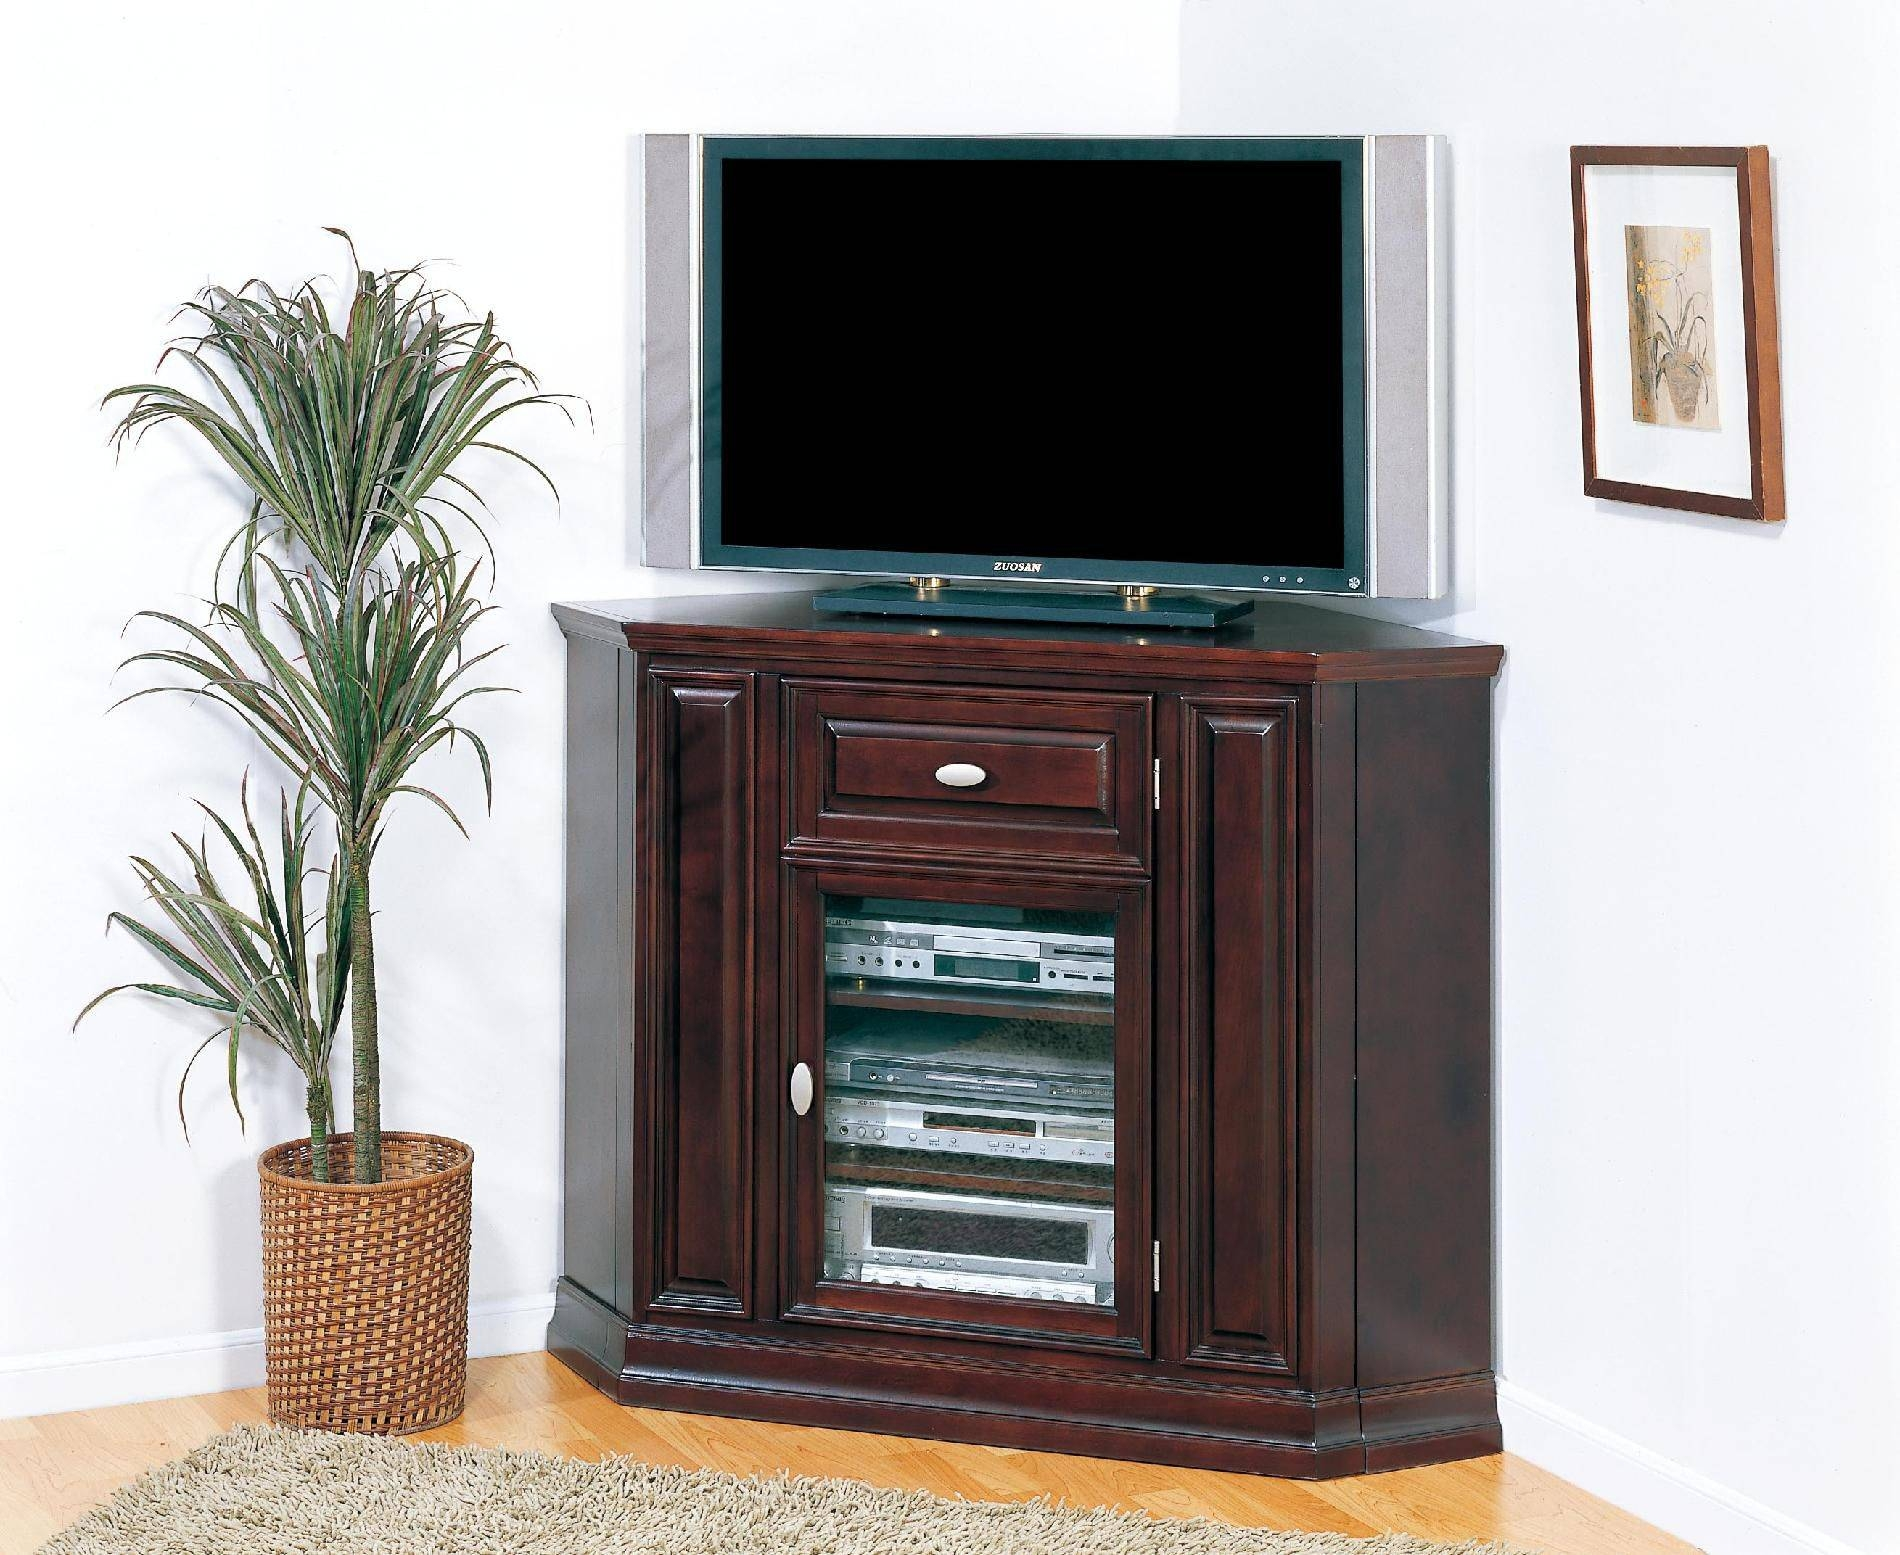 Tall Corner Tv Stand Boom S Deals On Tall Corner Tv Stands. Tall within Black Wood Corner Tv Stands (Image 12 of 15)